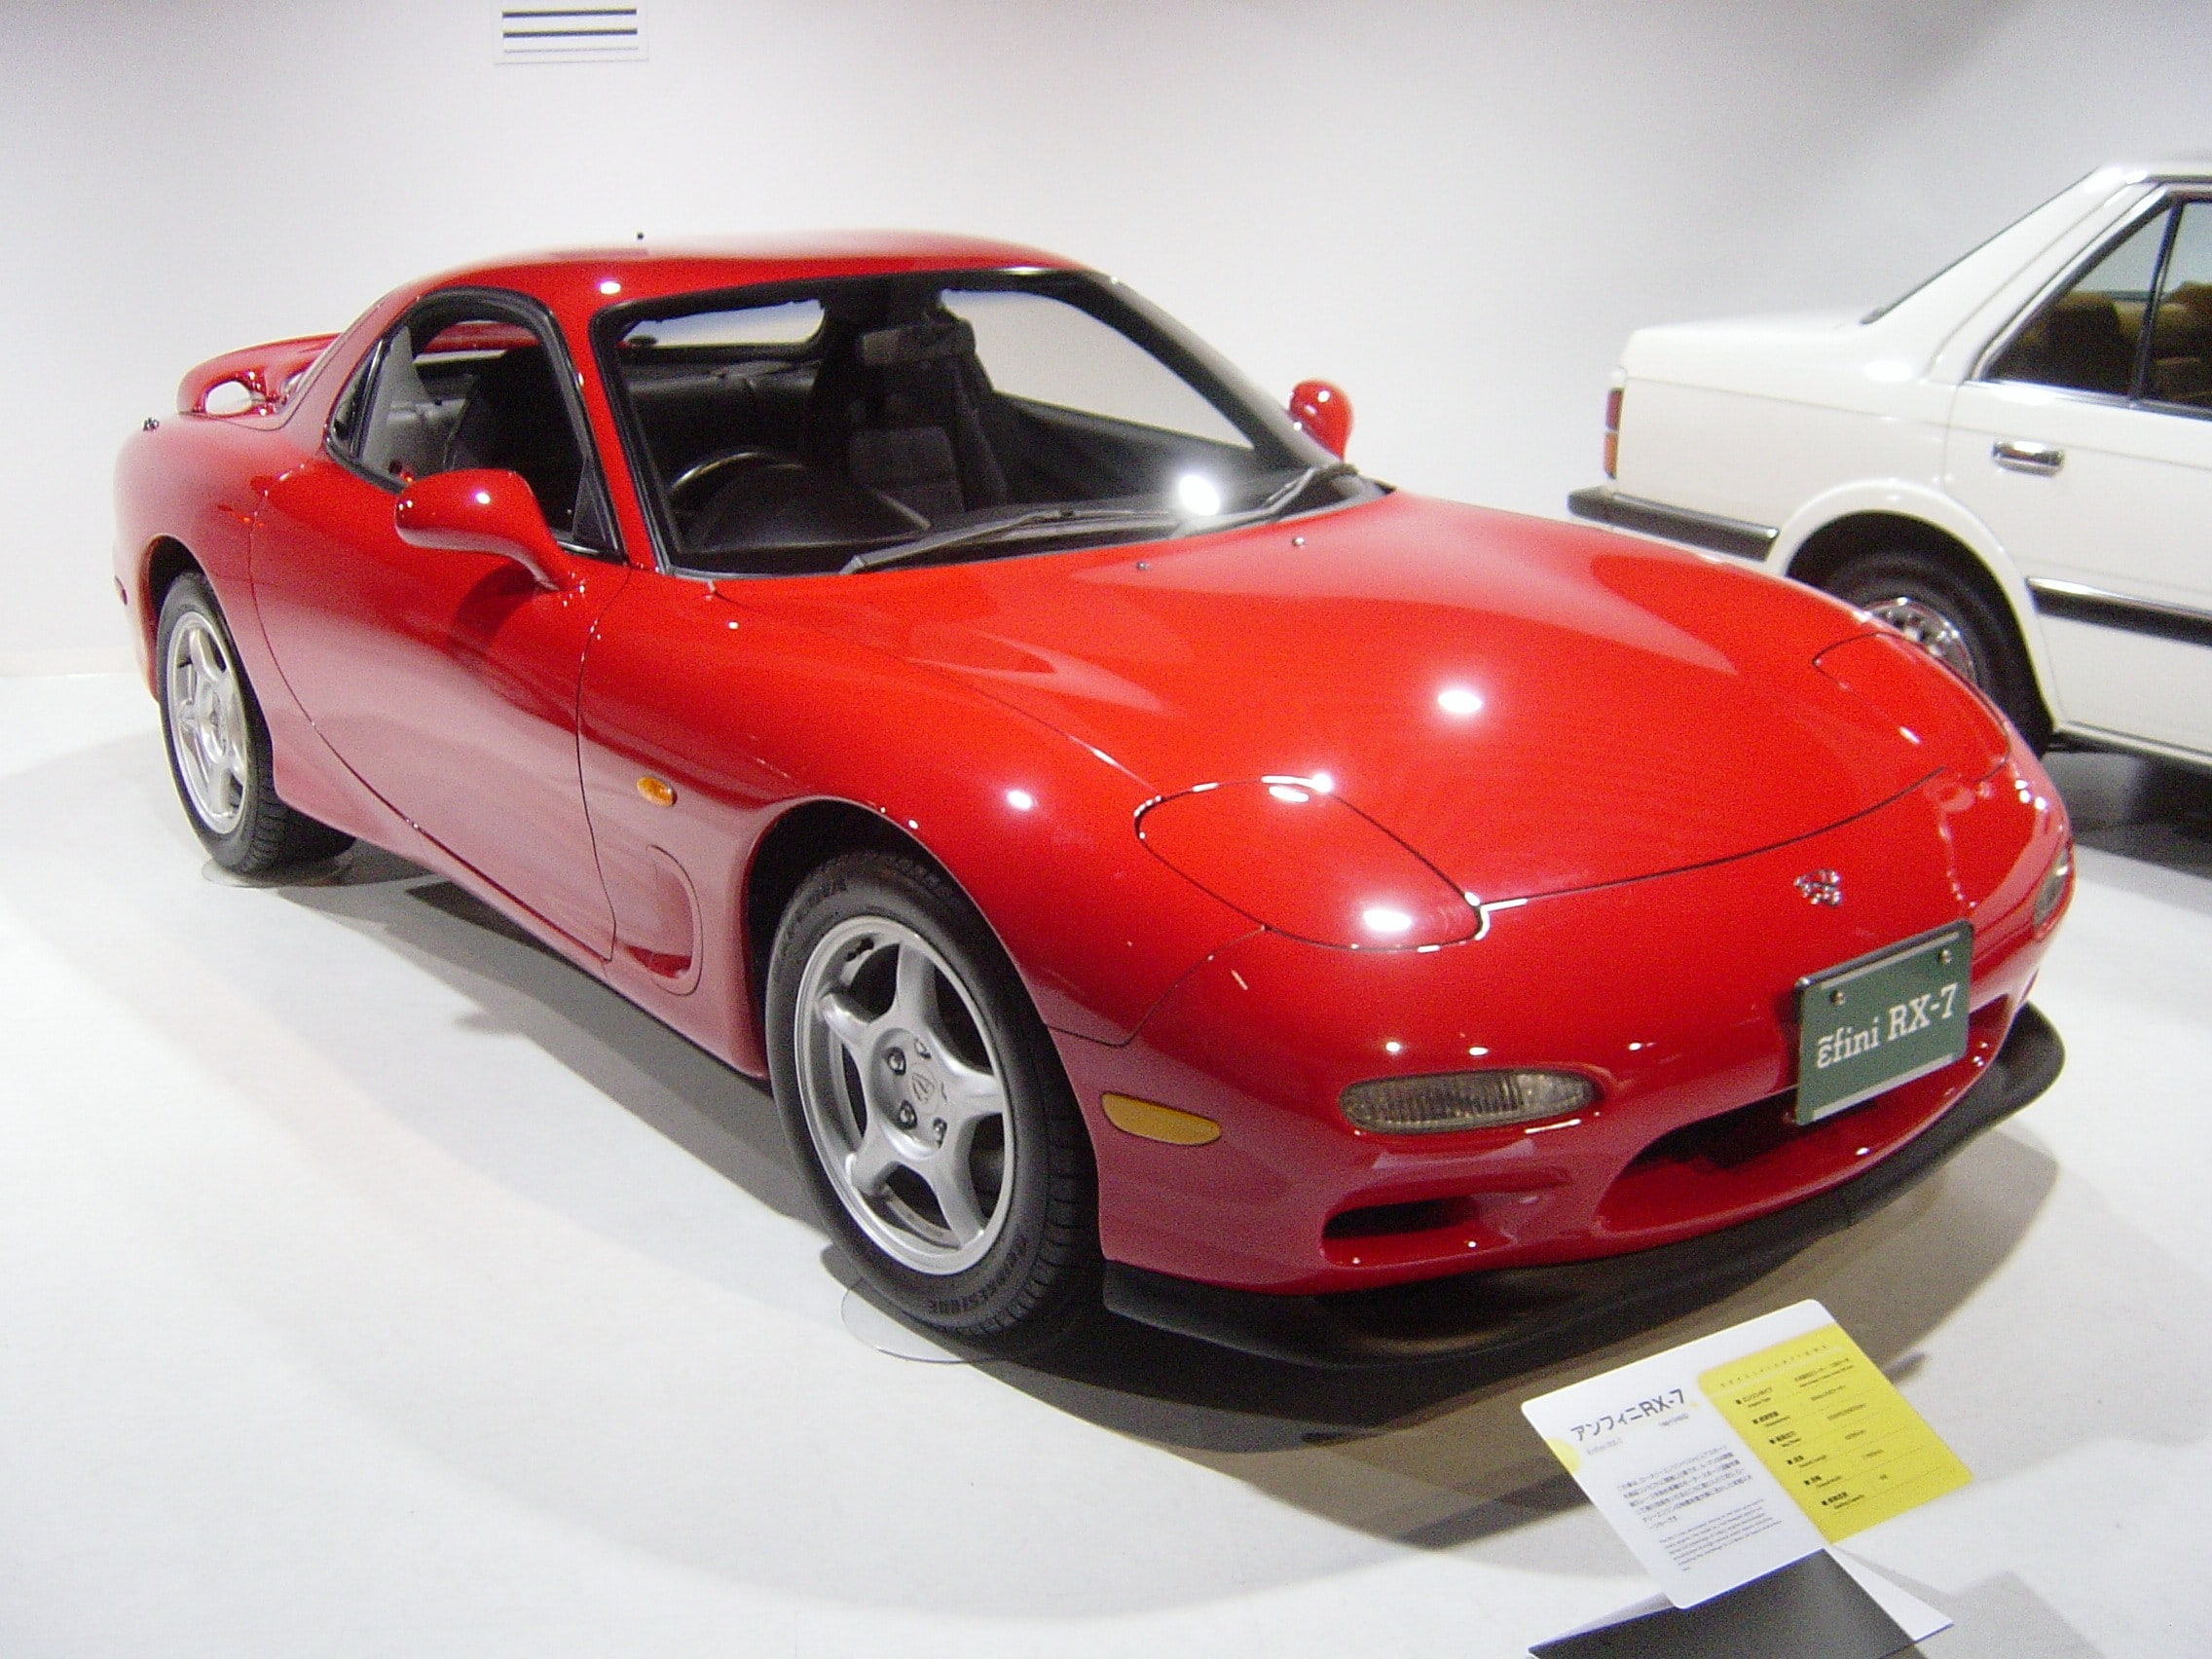 1993 Mazda RX-7 widescreen wallpapers